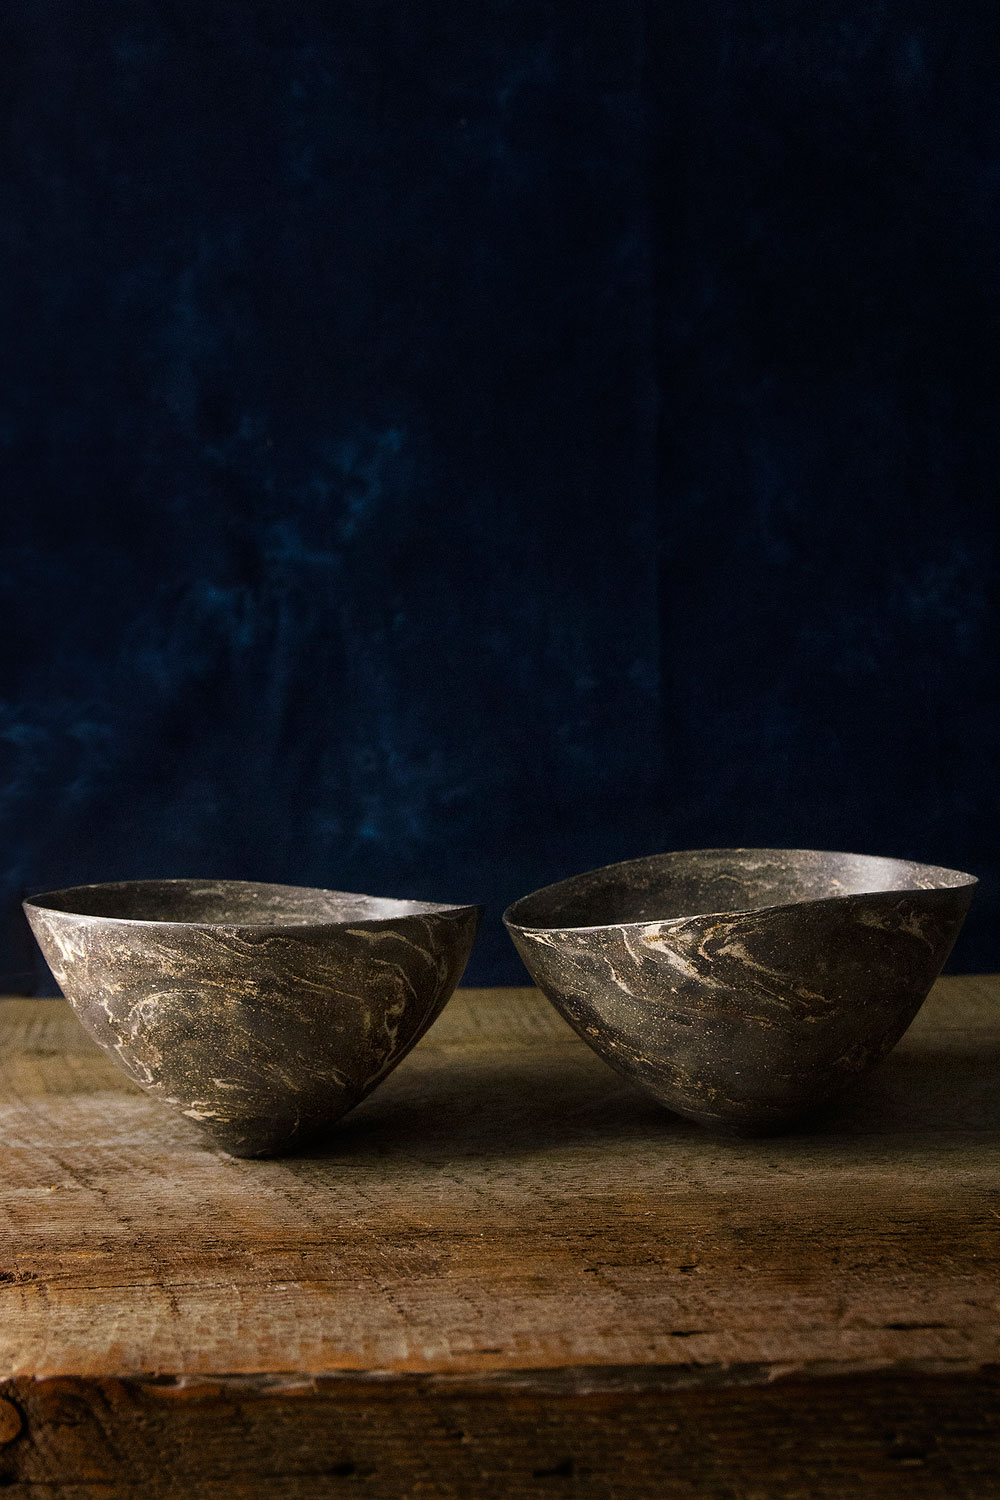 Raw Bowl Diptych No. 3